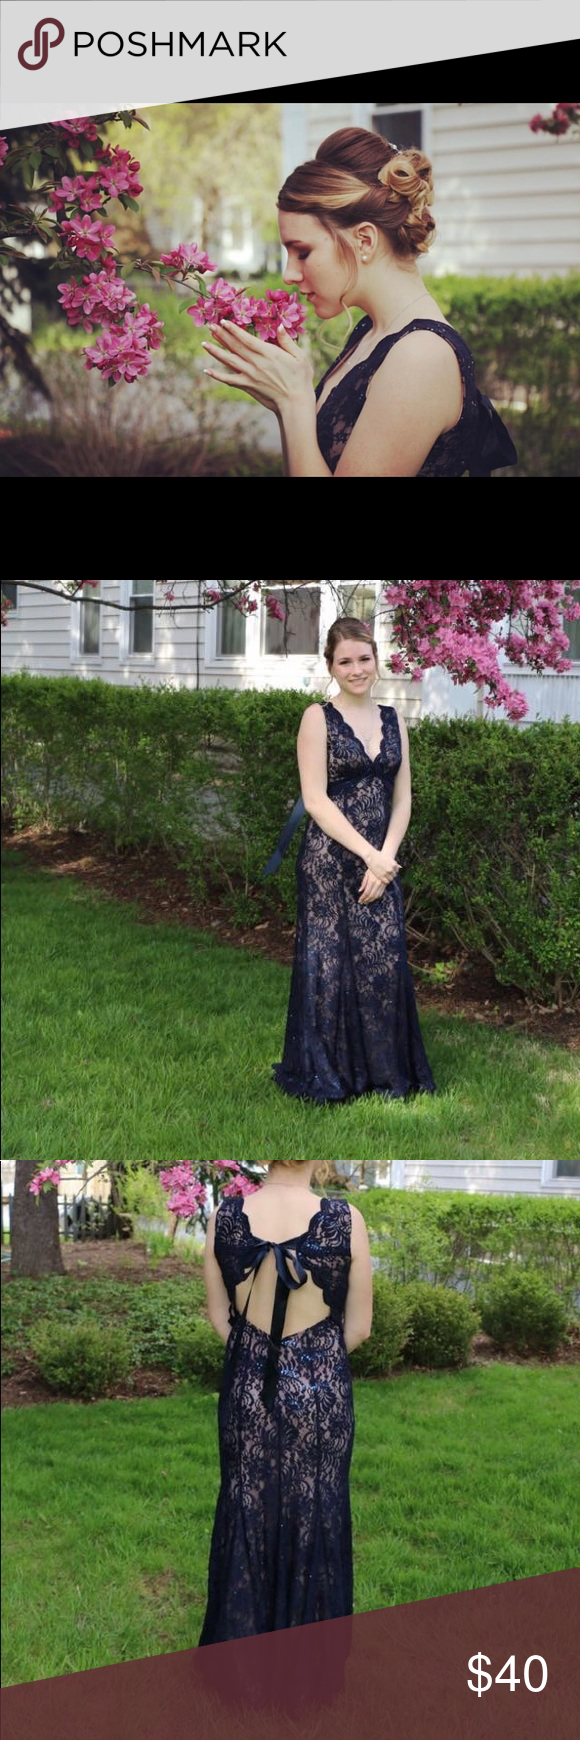 Navy blue nude lace prom dress worn only one time was not altered